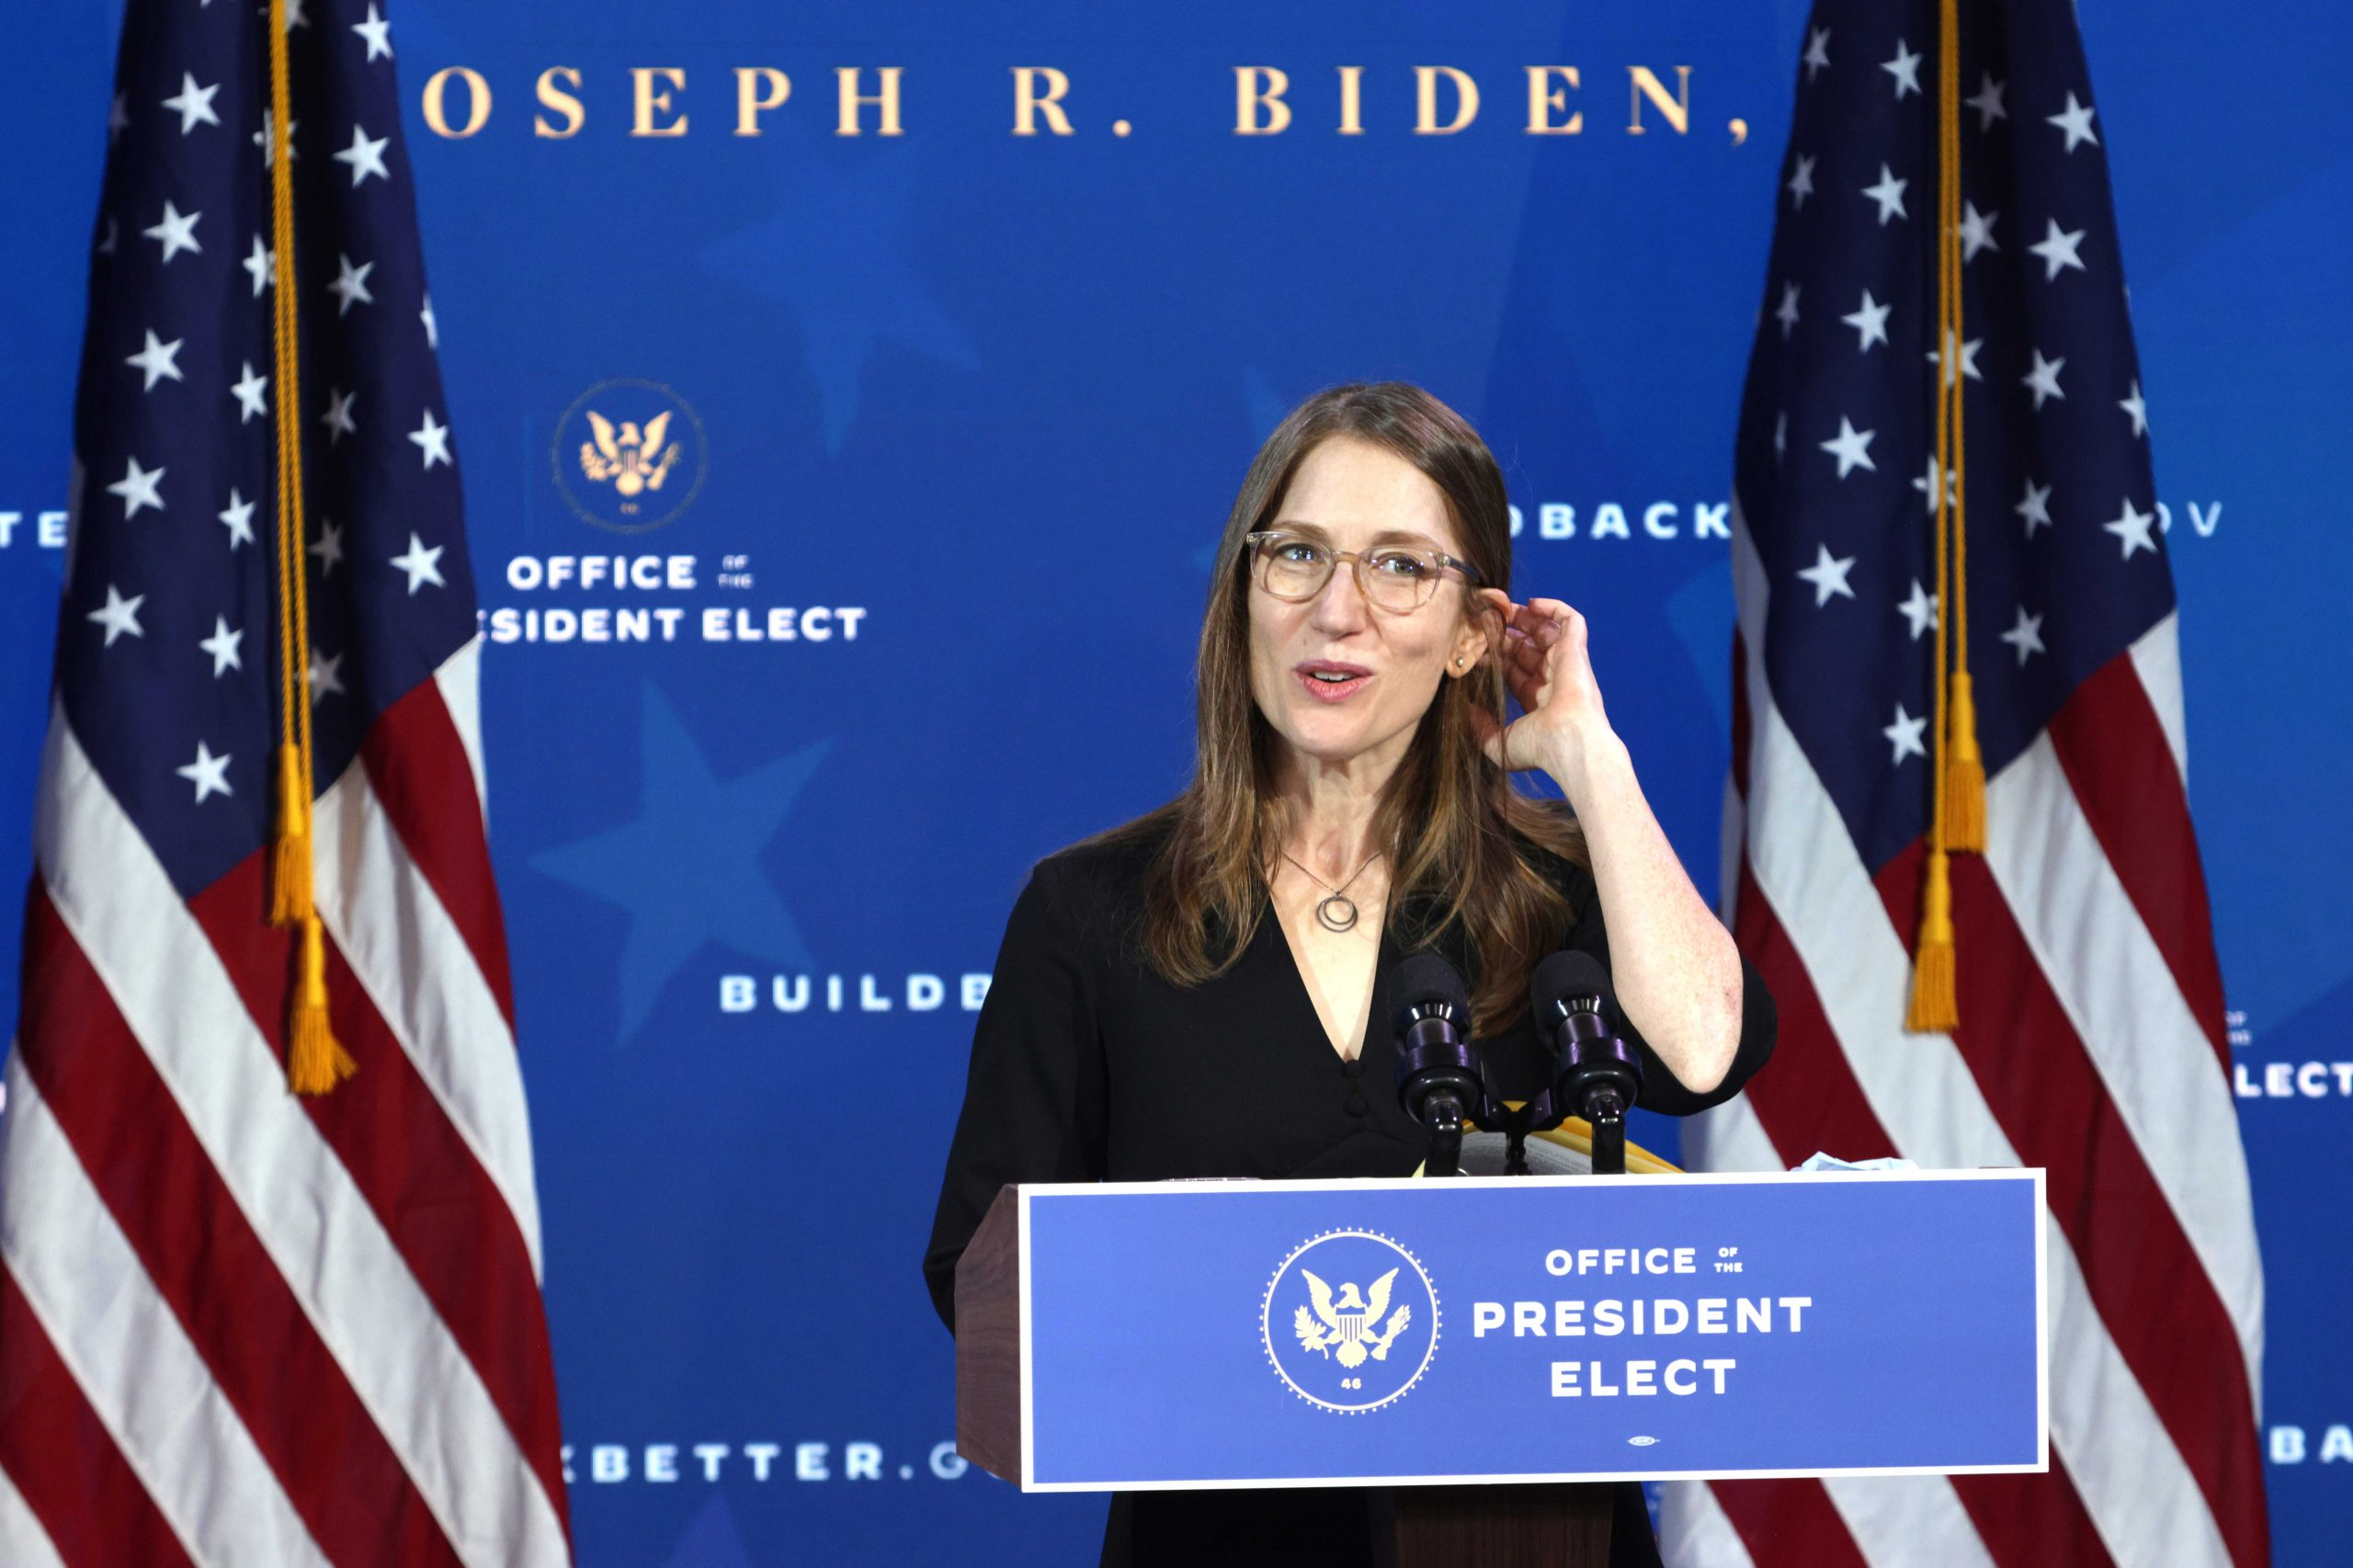 Biden high financial adviser dealing with accusations of mismanagement, verbal abuse